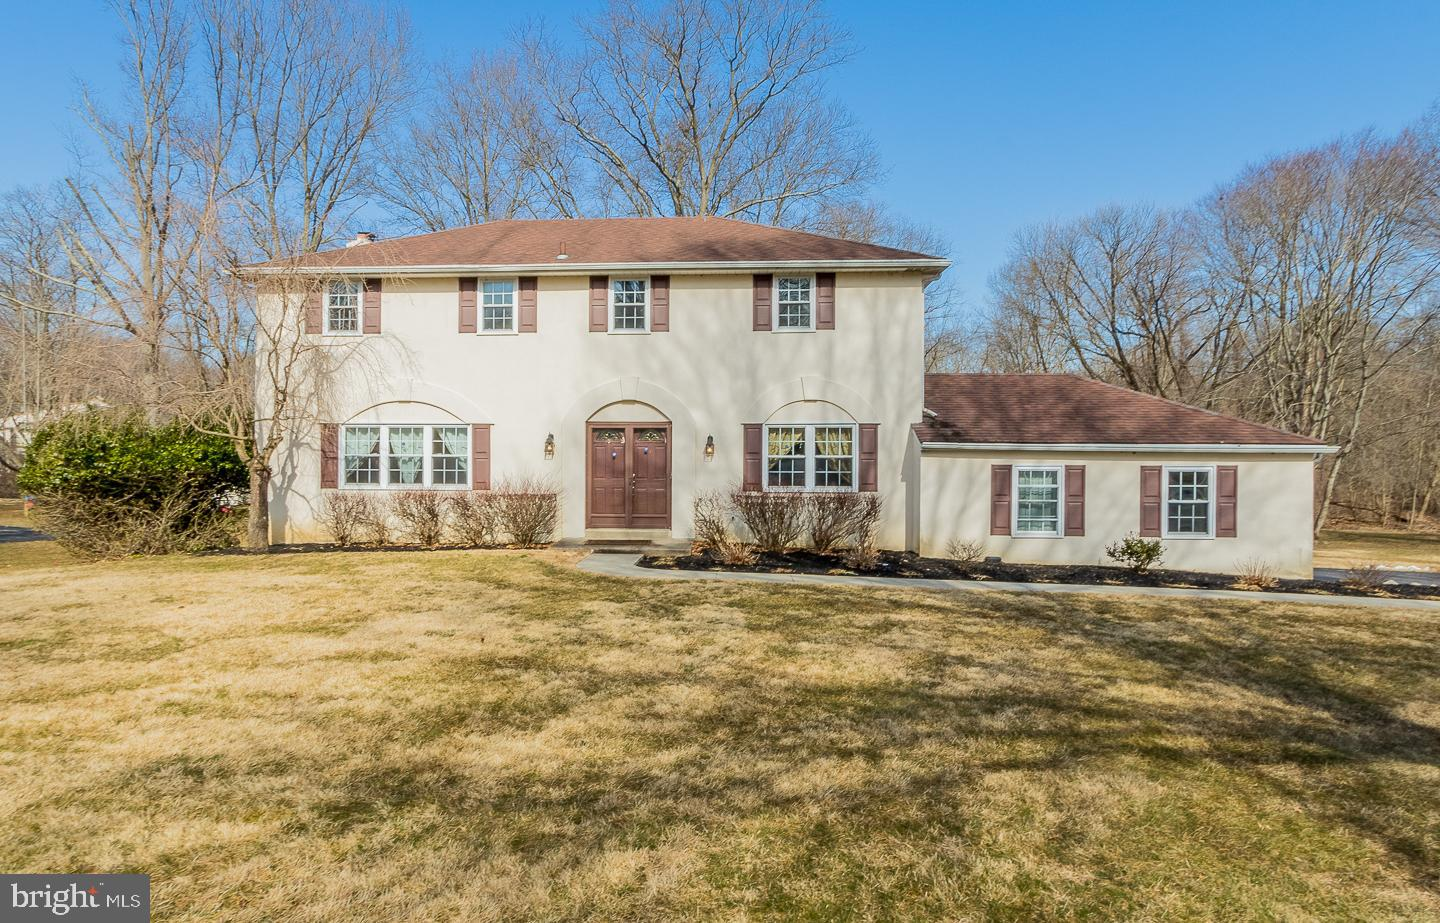 784 FAWN HILL ROAD, RADNOR, PA 19008